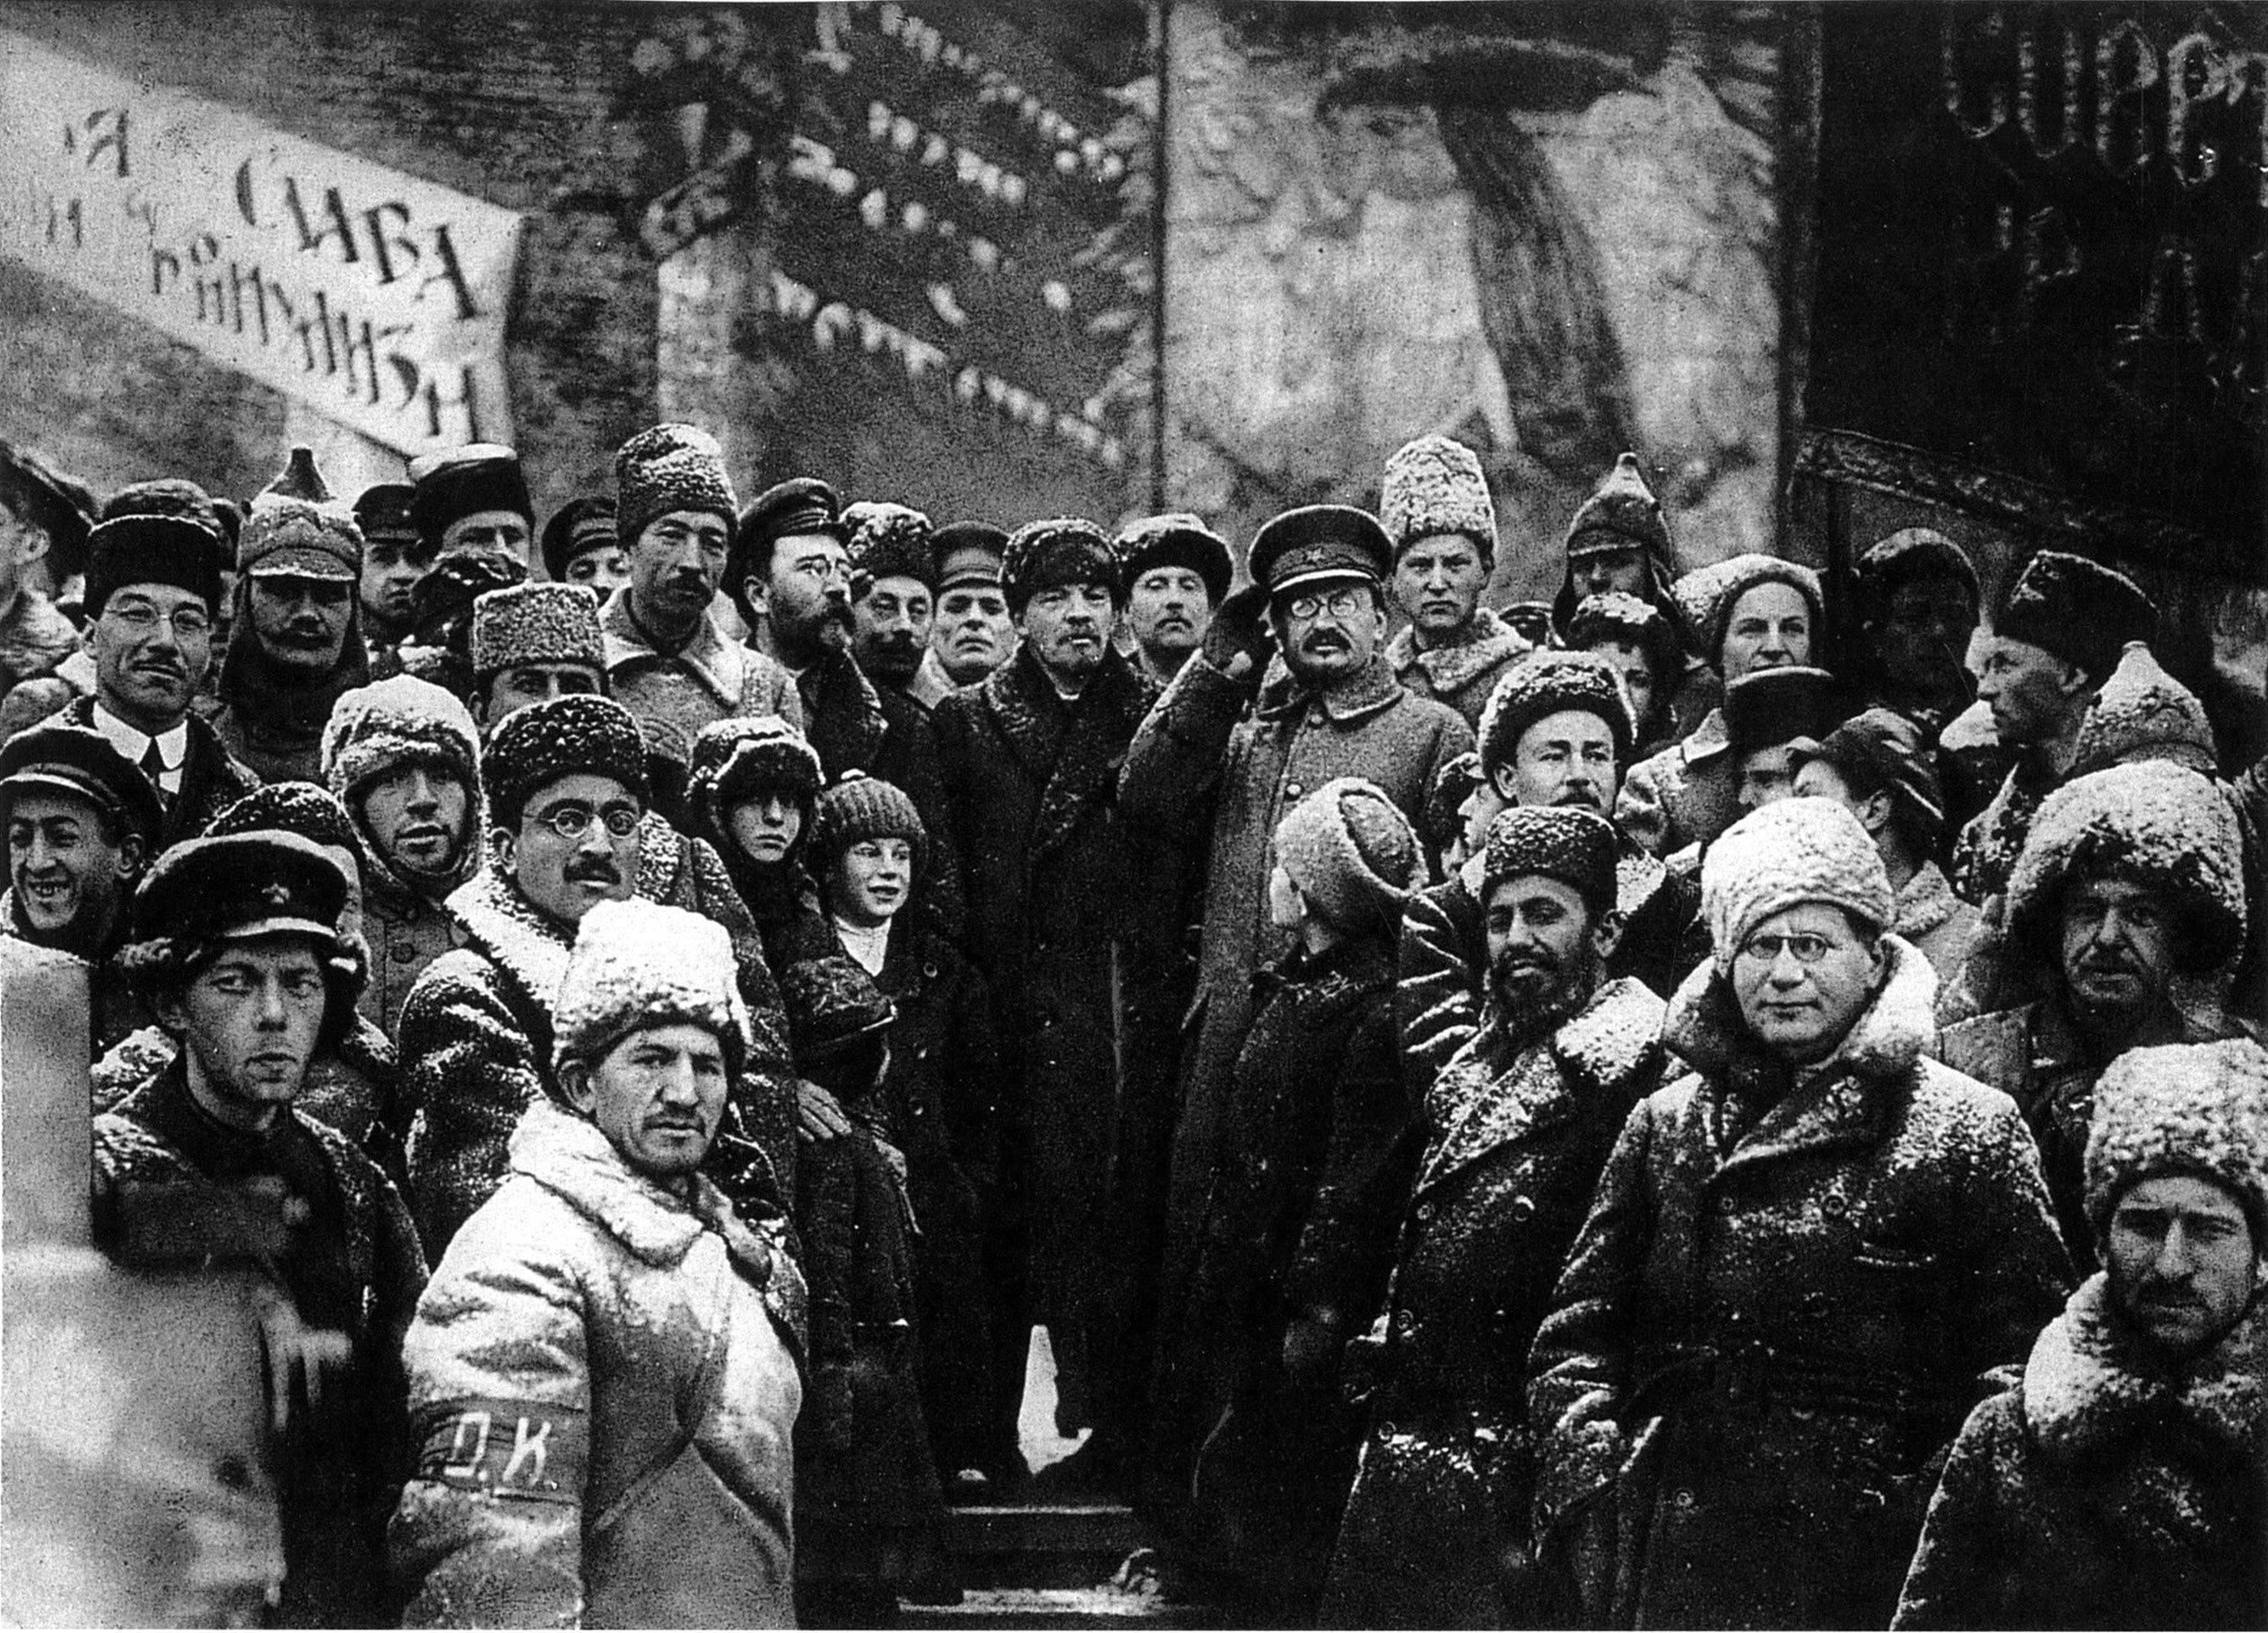 socialism hectic dialectics vladimir lenin and other soviet leaders celebrating the second anniversary of the revolution in red